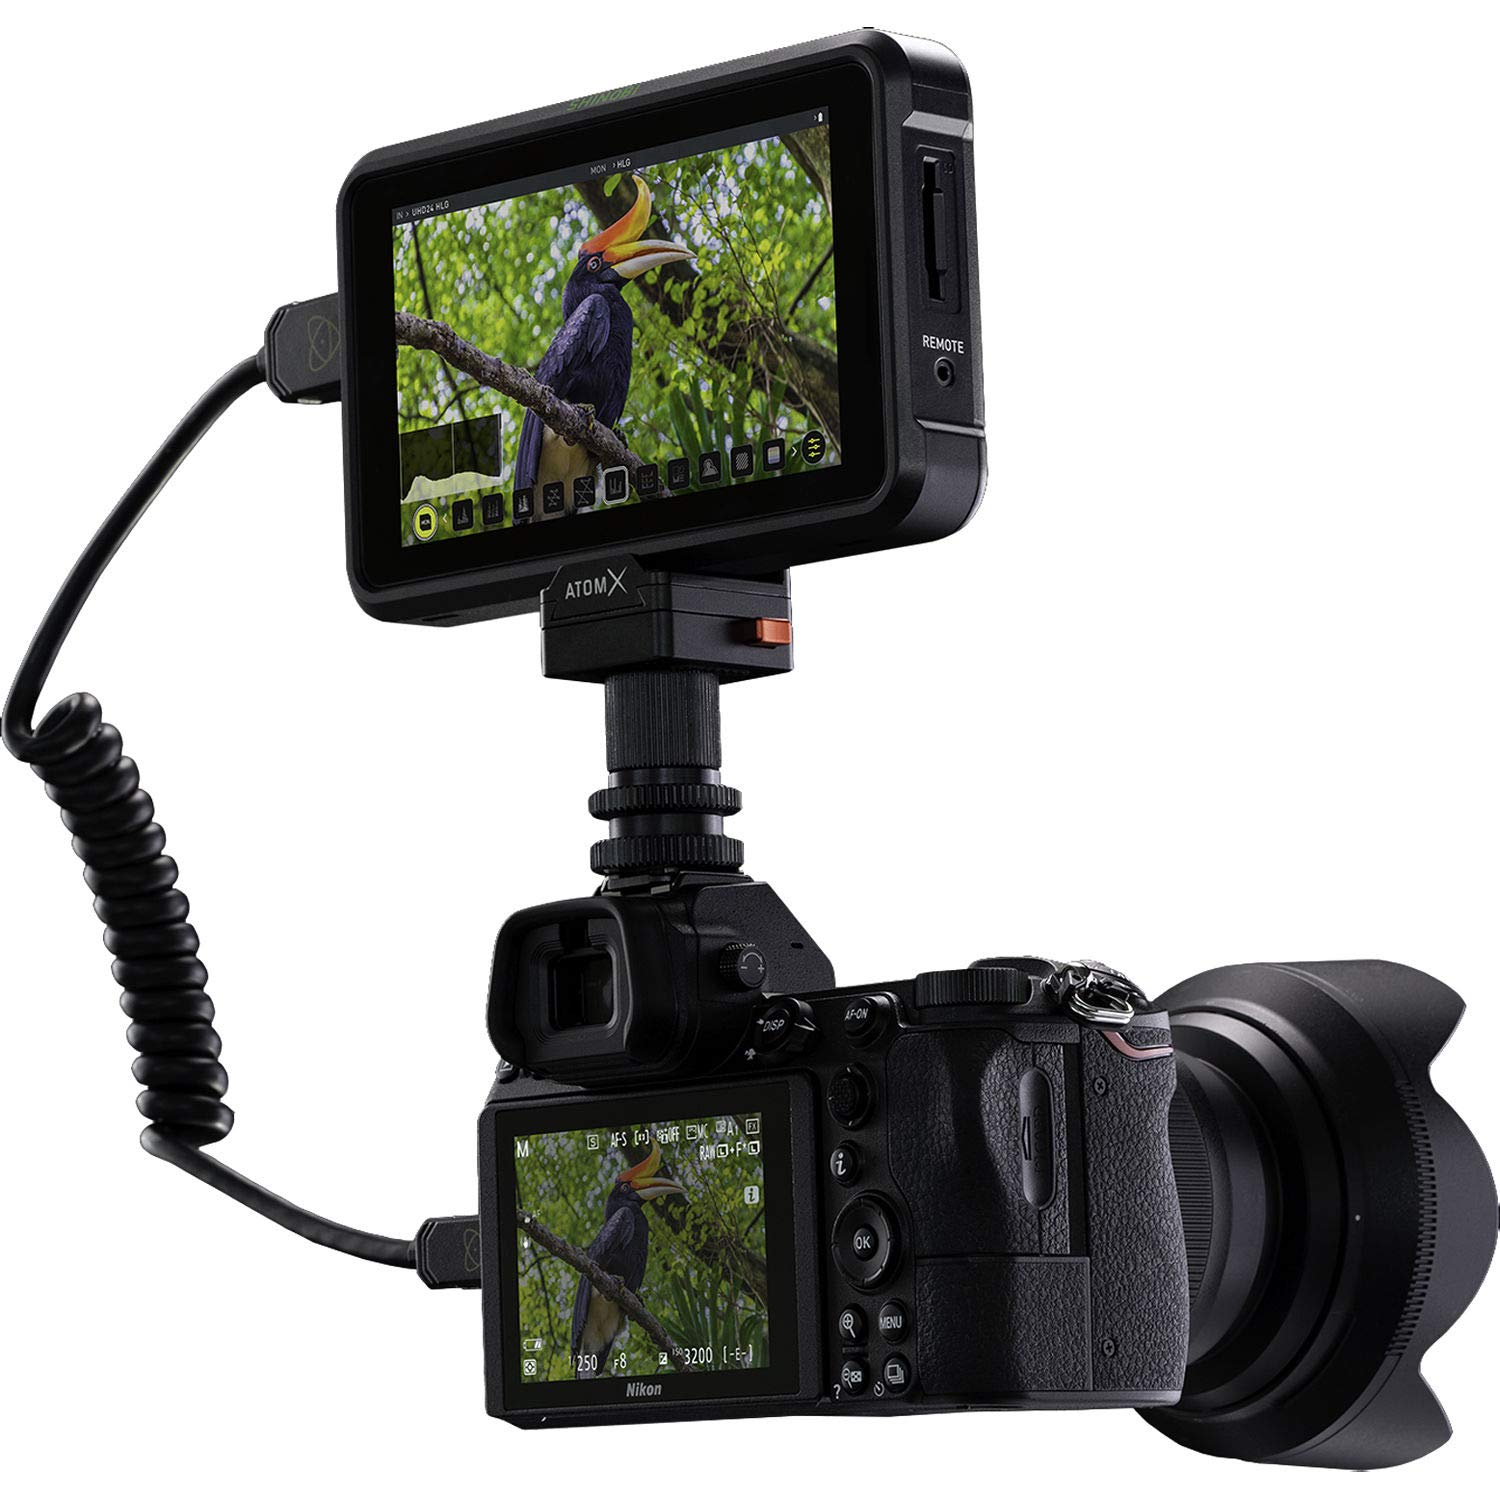 Atomos Shinobi 5.2 4K HDMI Monitor with Basic Accessory Bundle UHS-I//V-30 // Class-10 + Standard HDMI Cable Microfiber Cleaning Cloth Includes: SanDisk Extreme PRO 64GB SDXC Memory Card